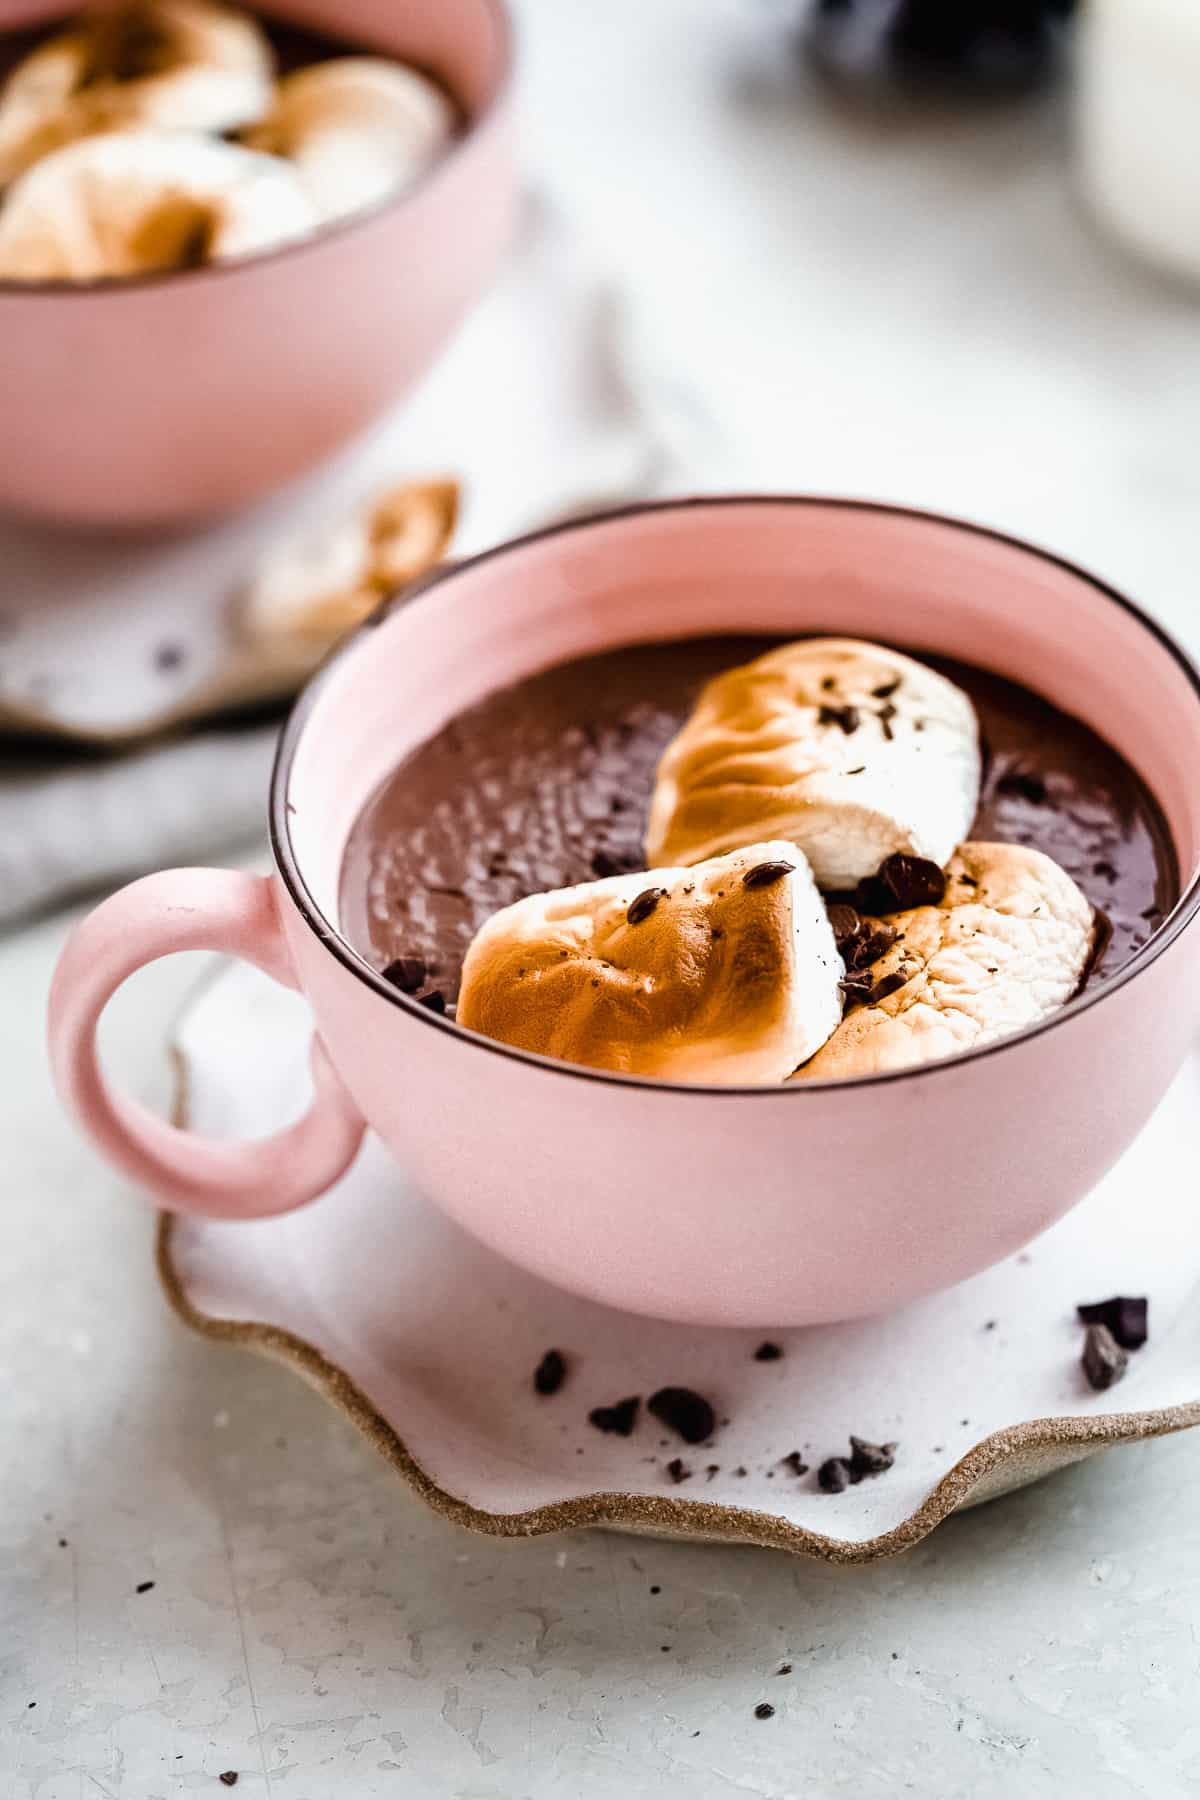 Close up photo of Swoon-worthy Dairy-free Hot Chocolate in a large pink mug with three toasted marshmallows on top.